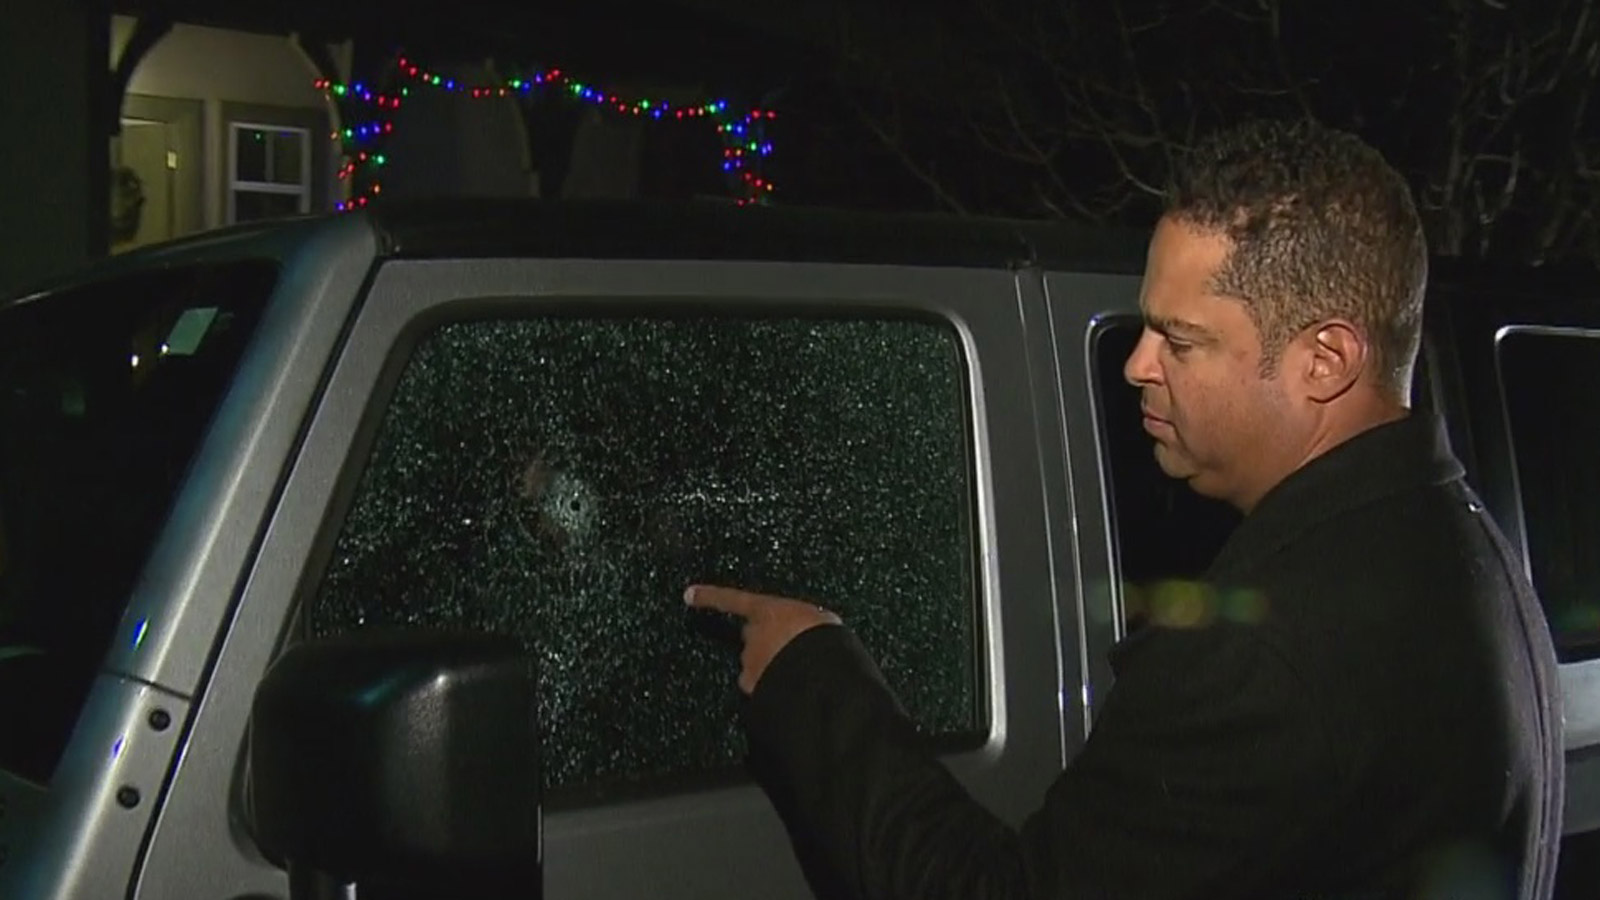 Samuel Thompson shows CBS4 the damage to his car. (credit: CBS)